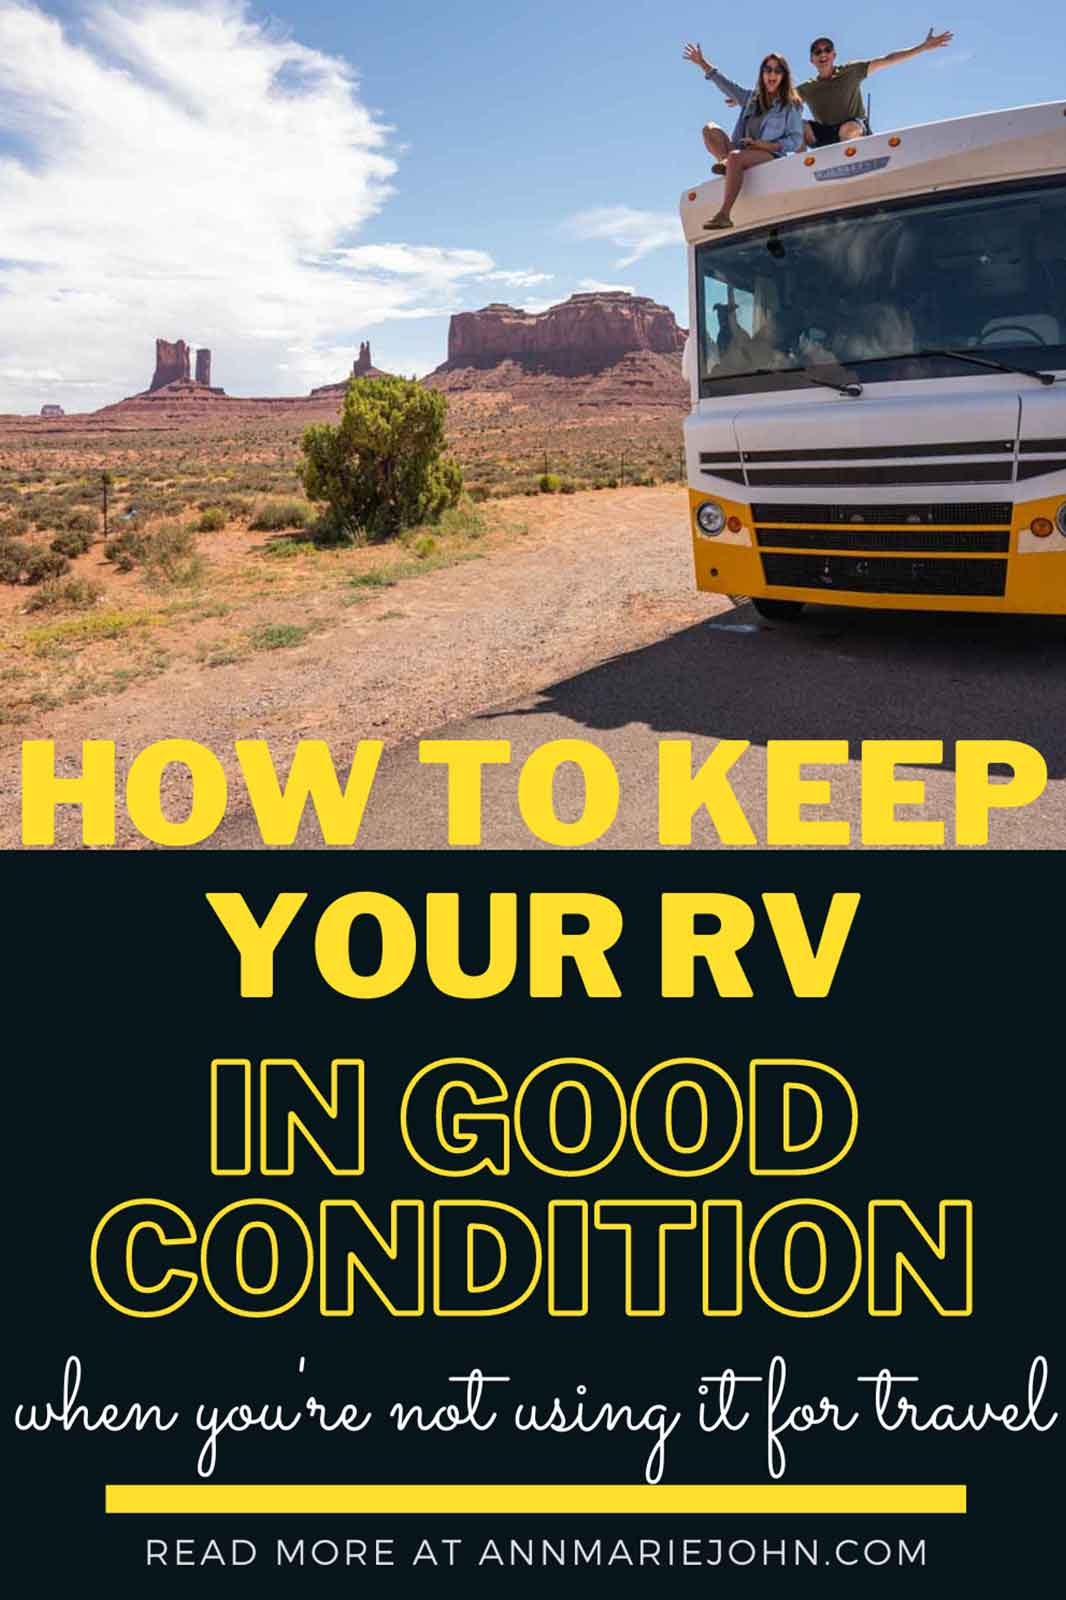 How To Keep Your RV In Good Condition When You're Not Using It To Travel